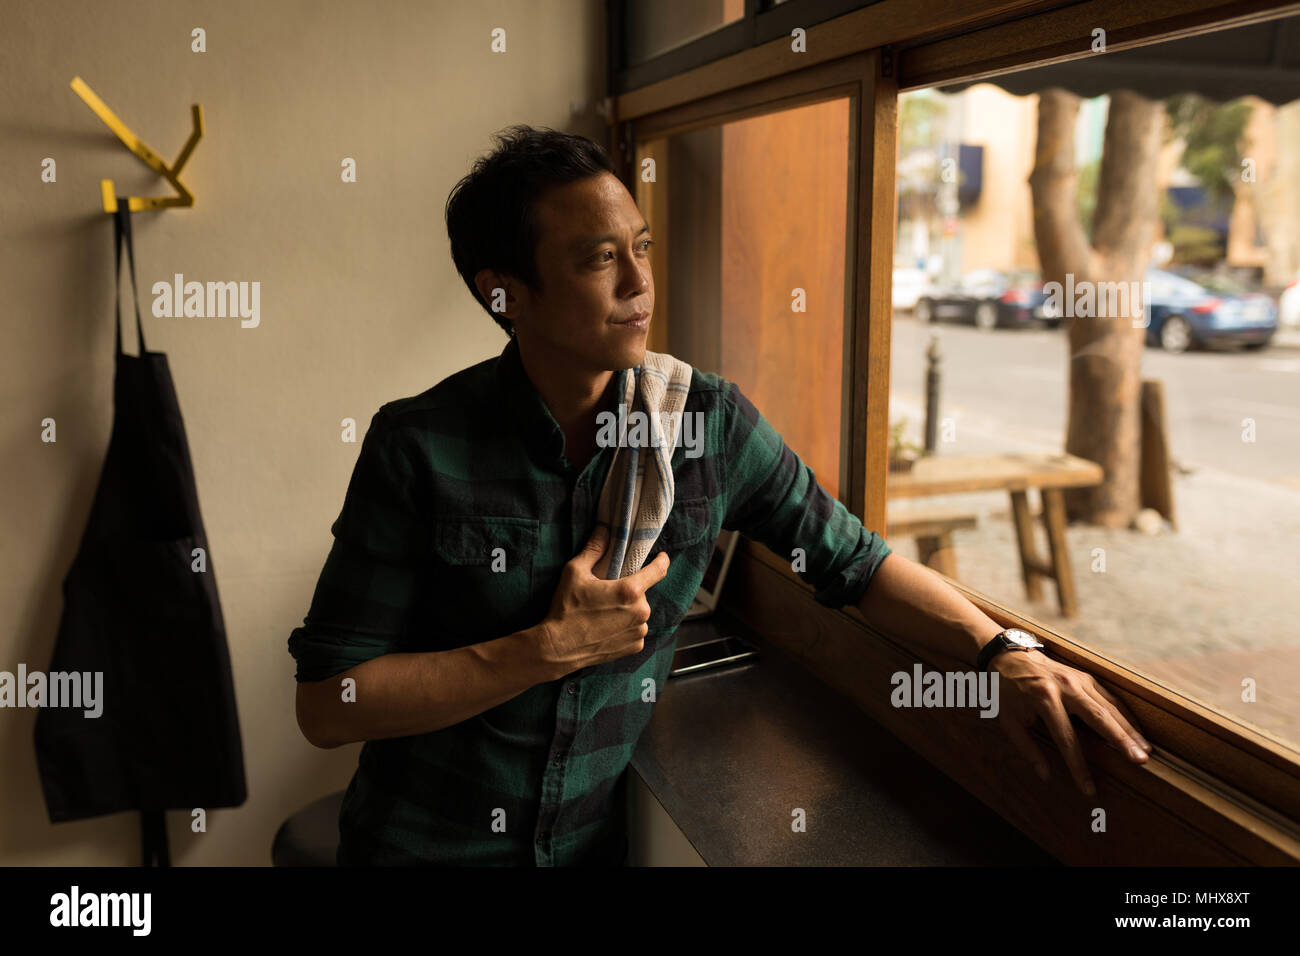 Thoughtful man looking through window - Stock Image